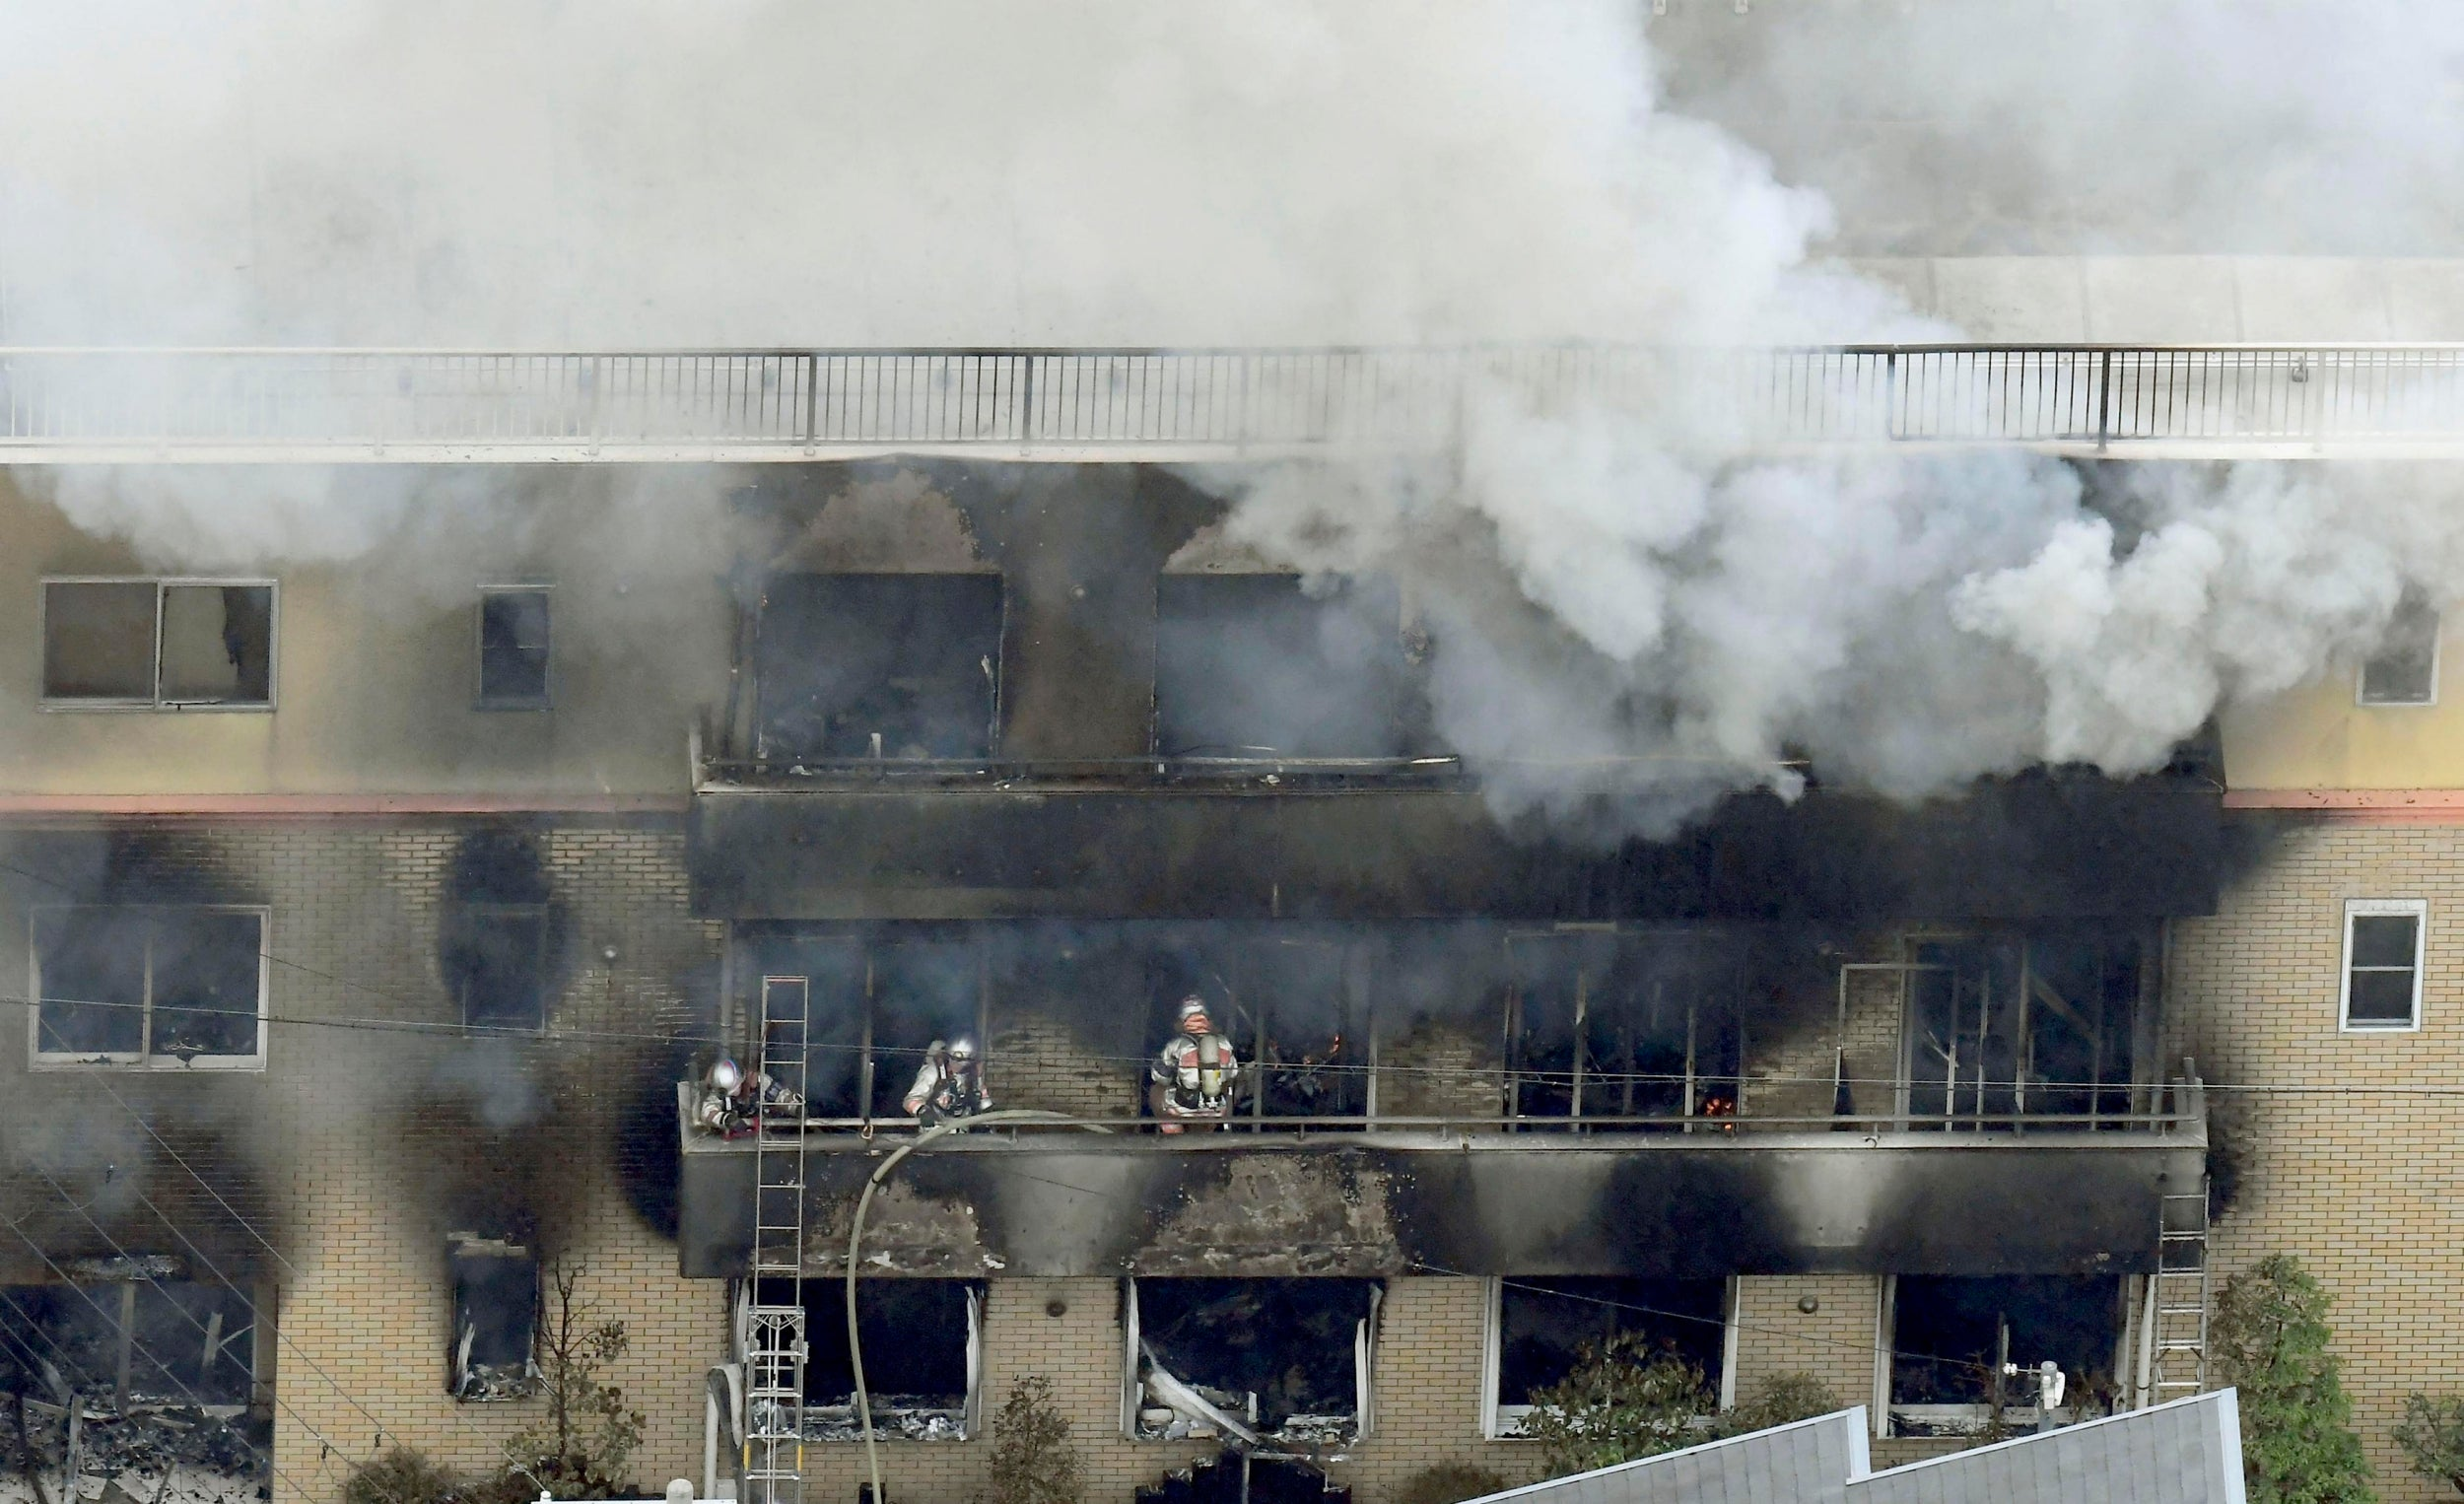 Kyoto Animation fire: At least 33 dead in arson attack by man